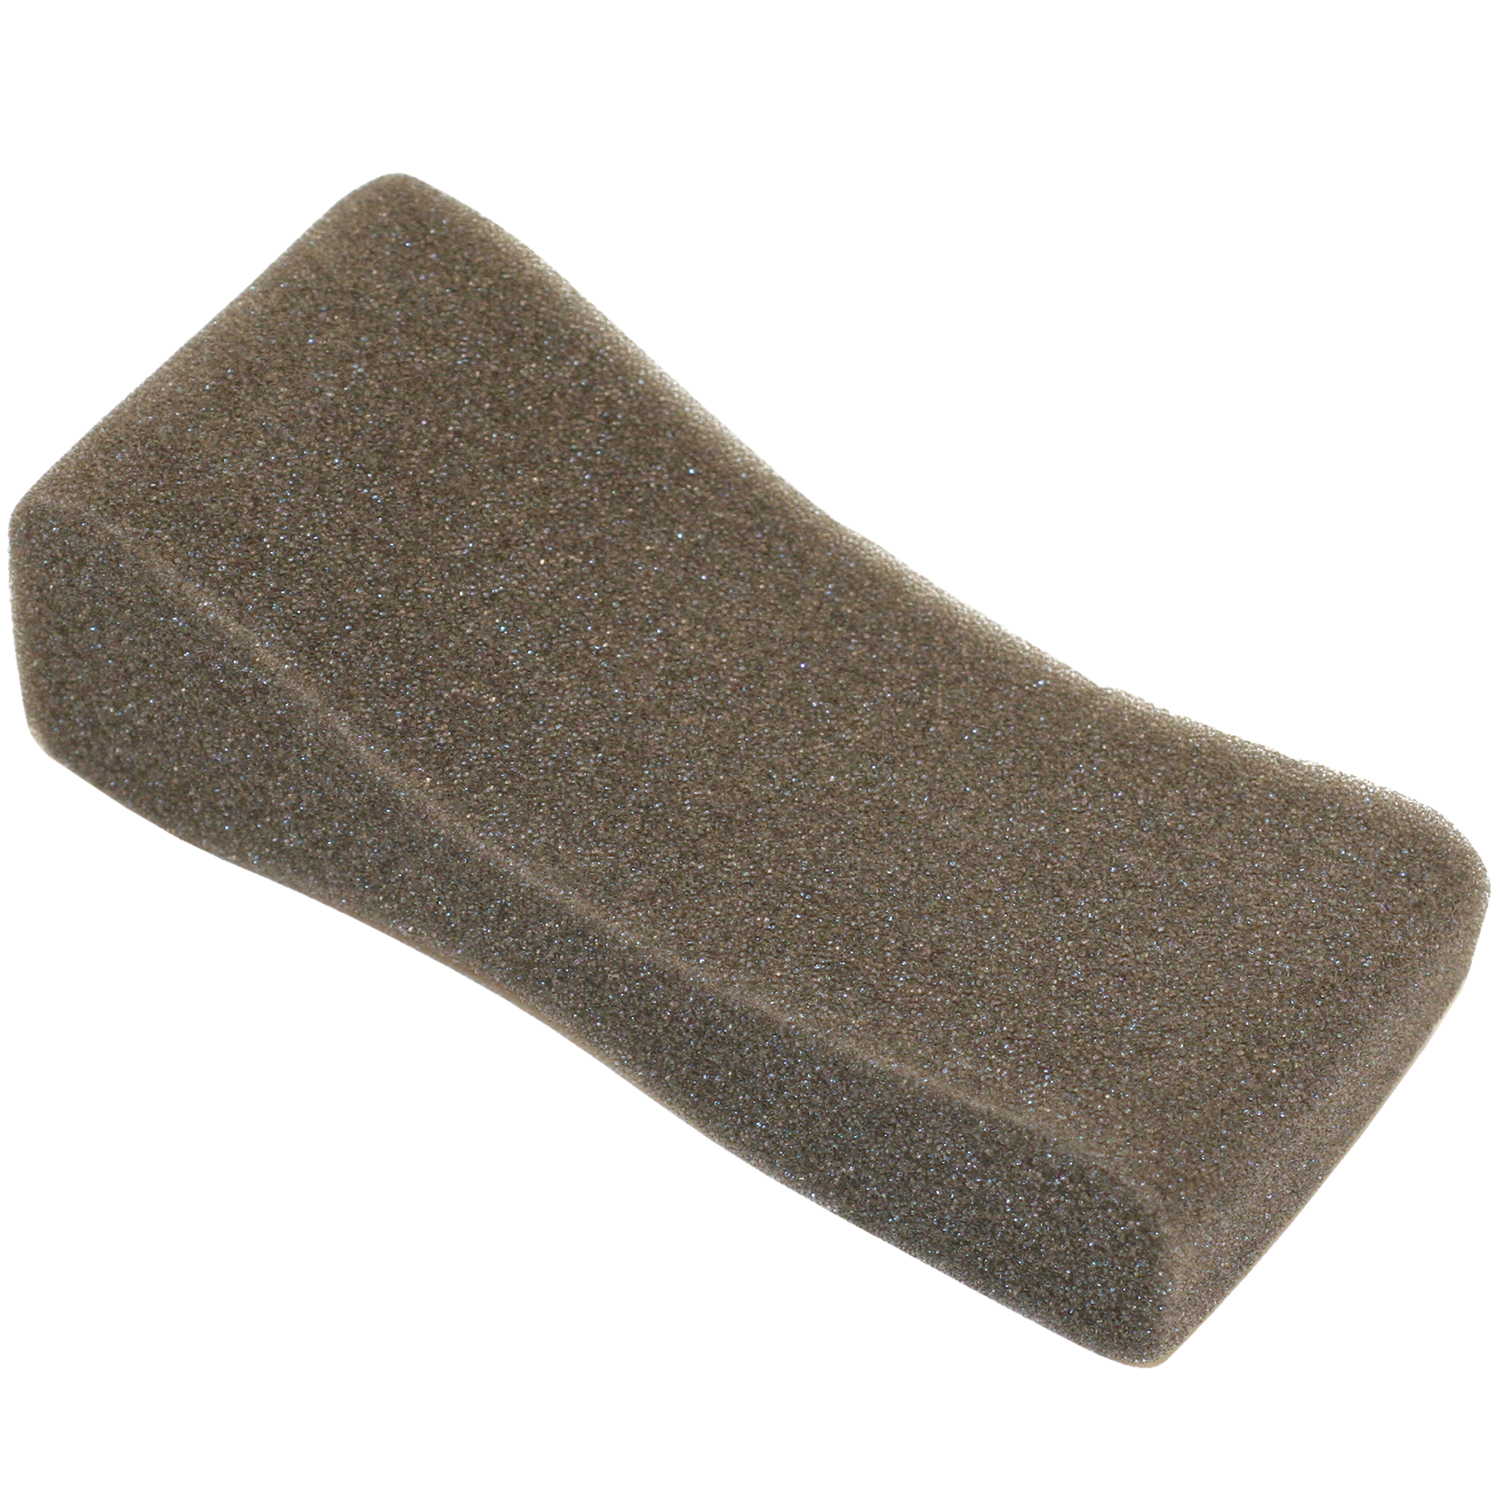 Shoulder rest,economy foam,vln,3/4-1/2